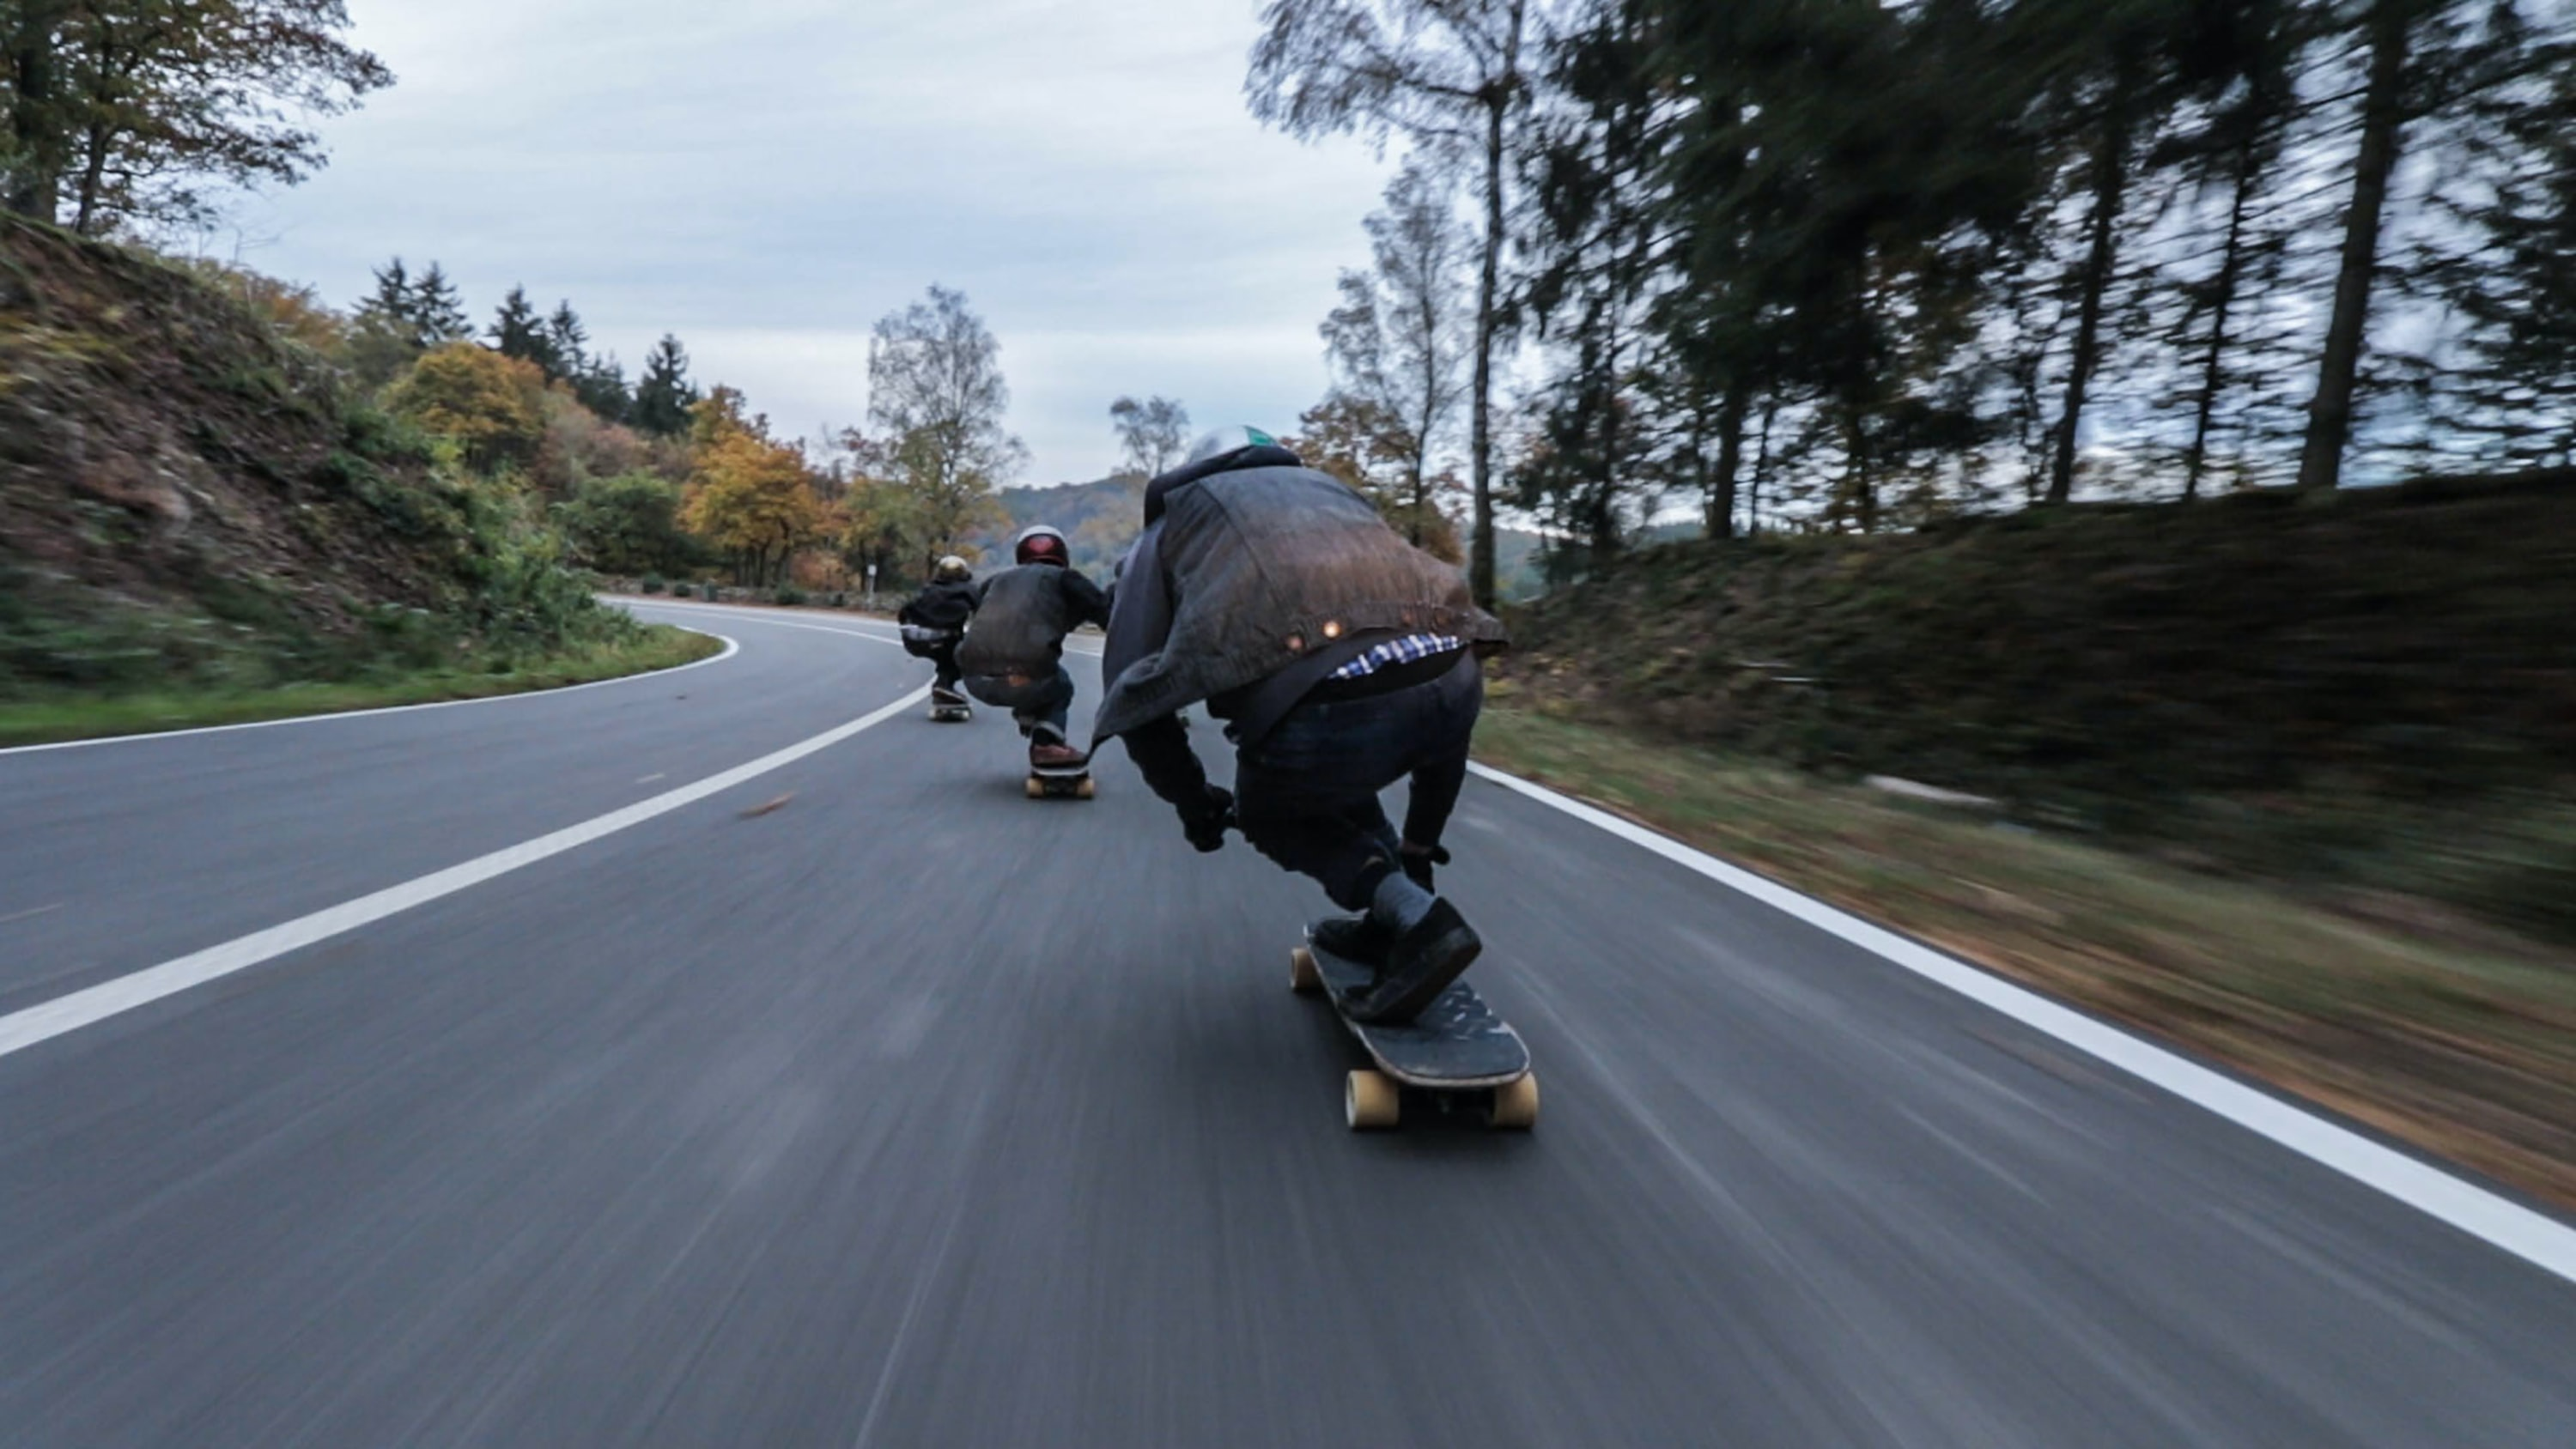 Three skateboarders speeding on an asphalt road